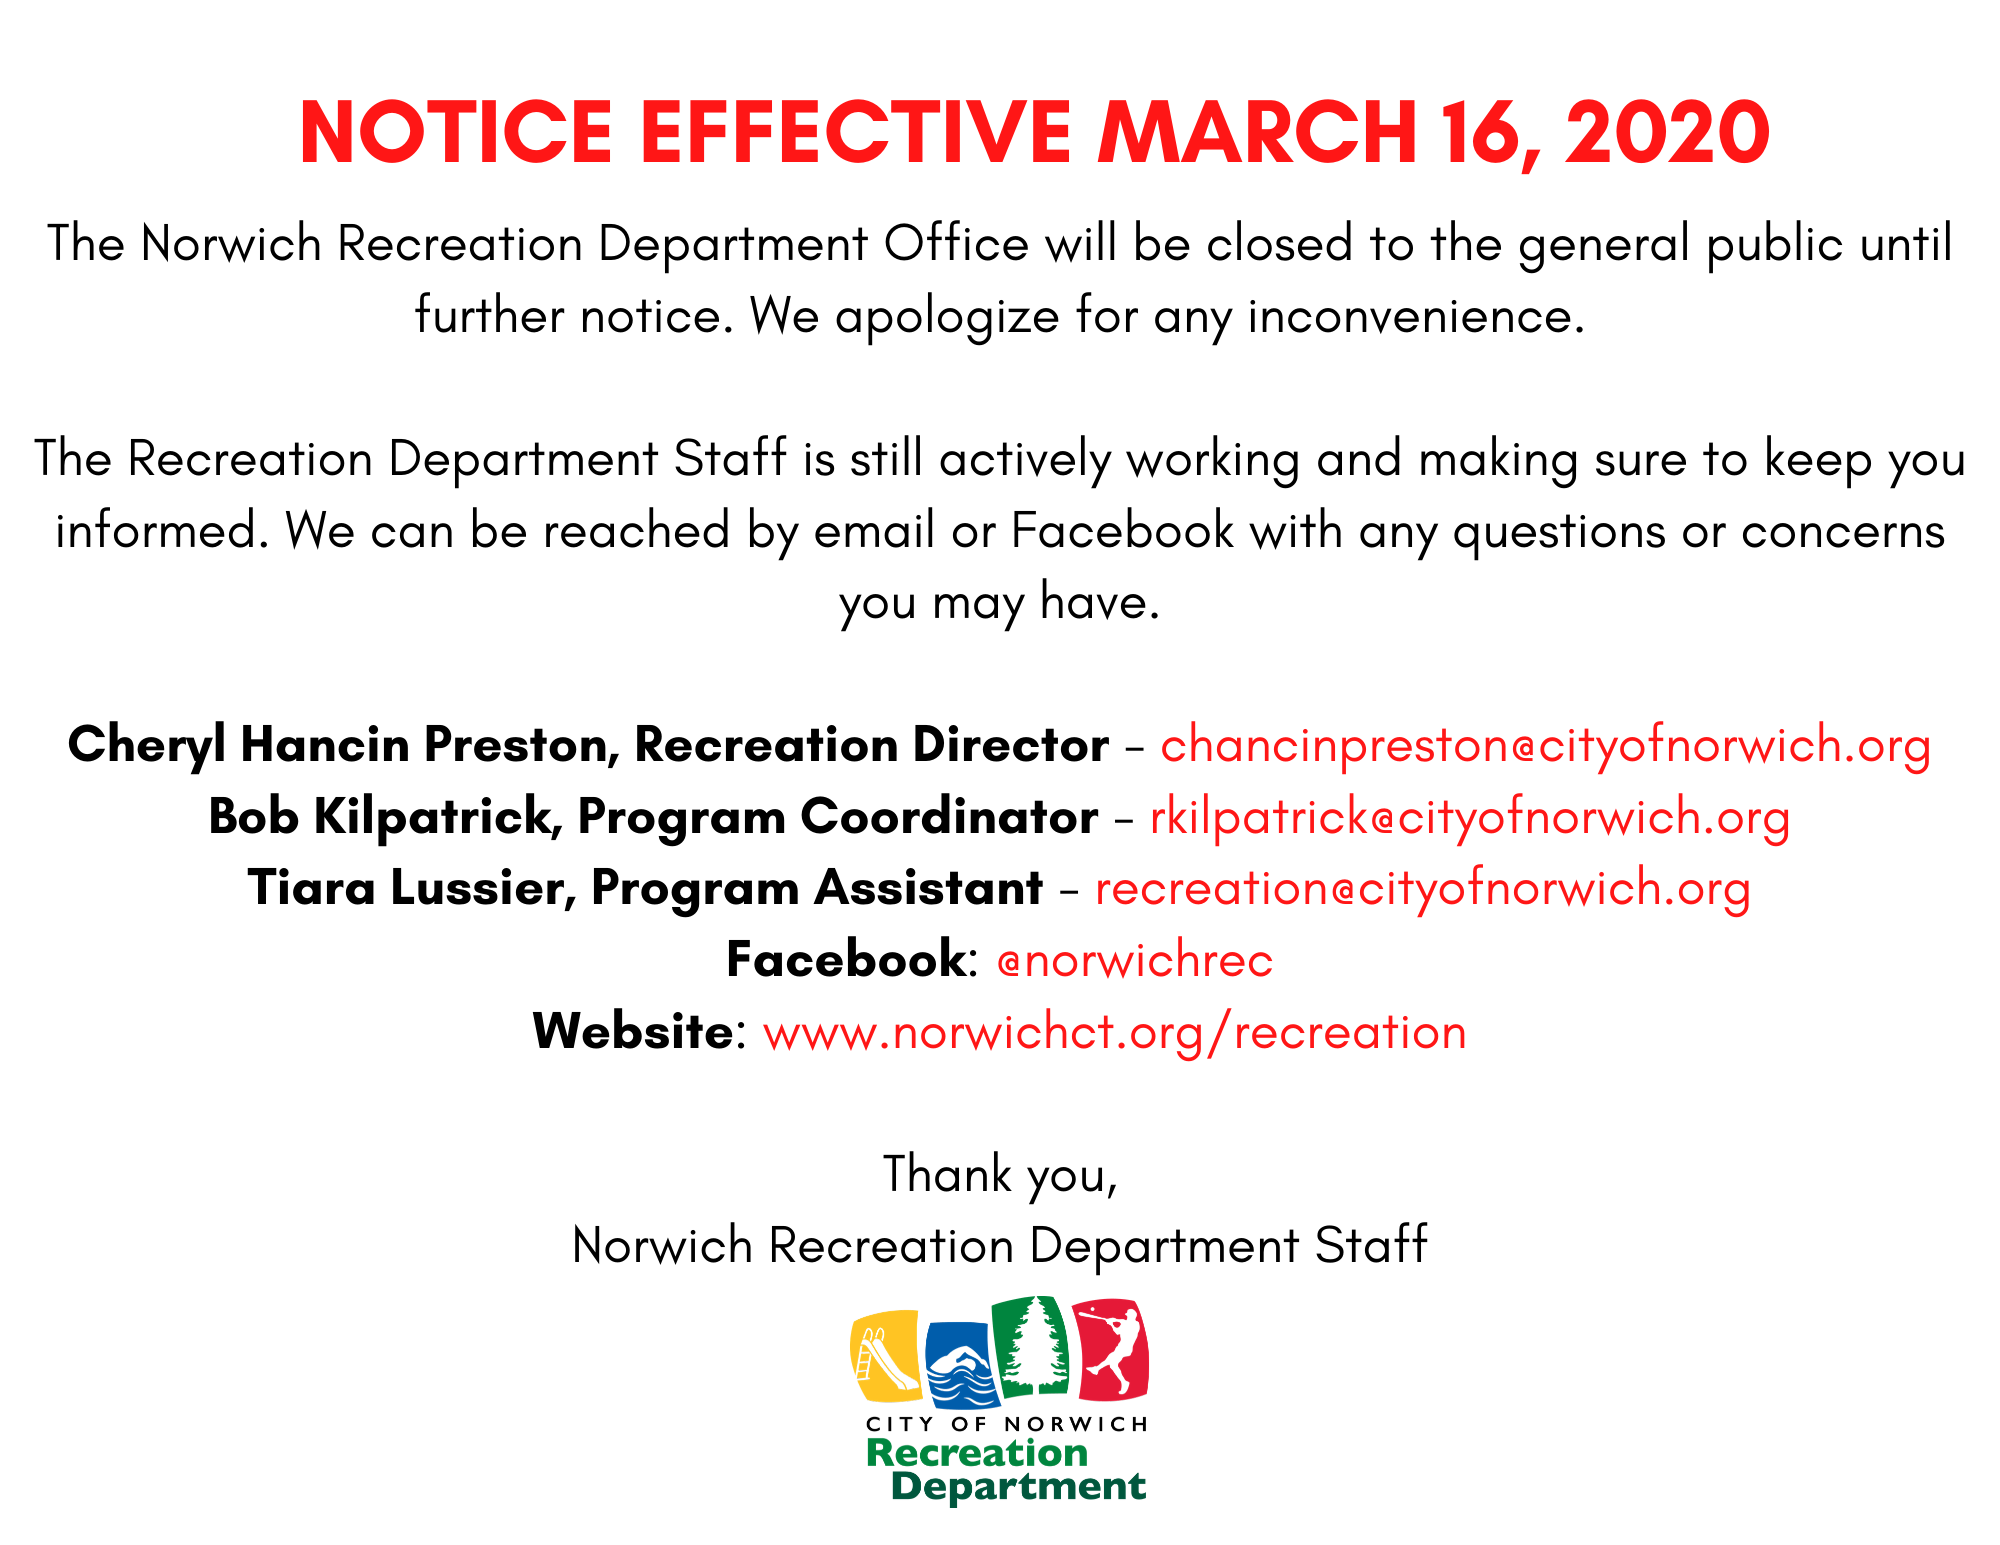 Copy of Notice Effective March 16, 2020